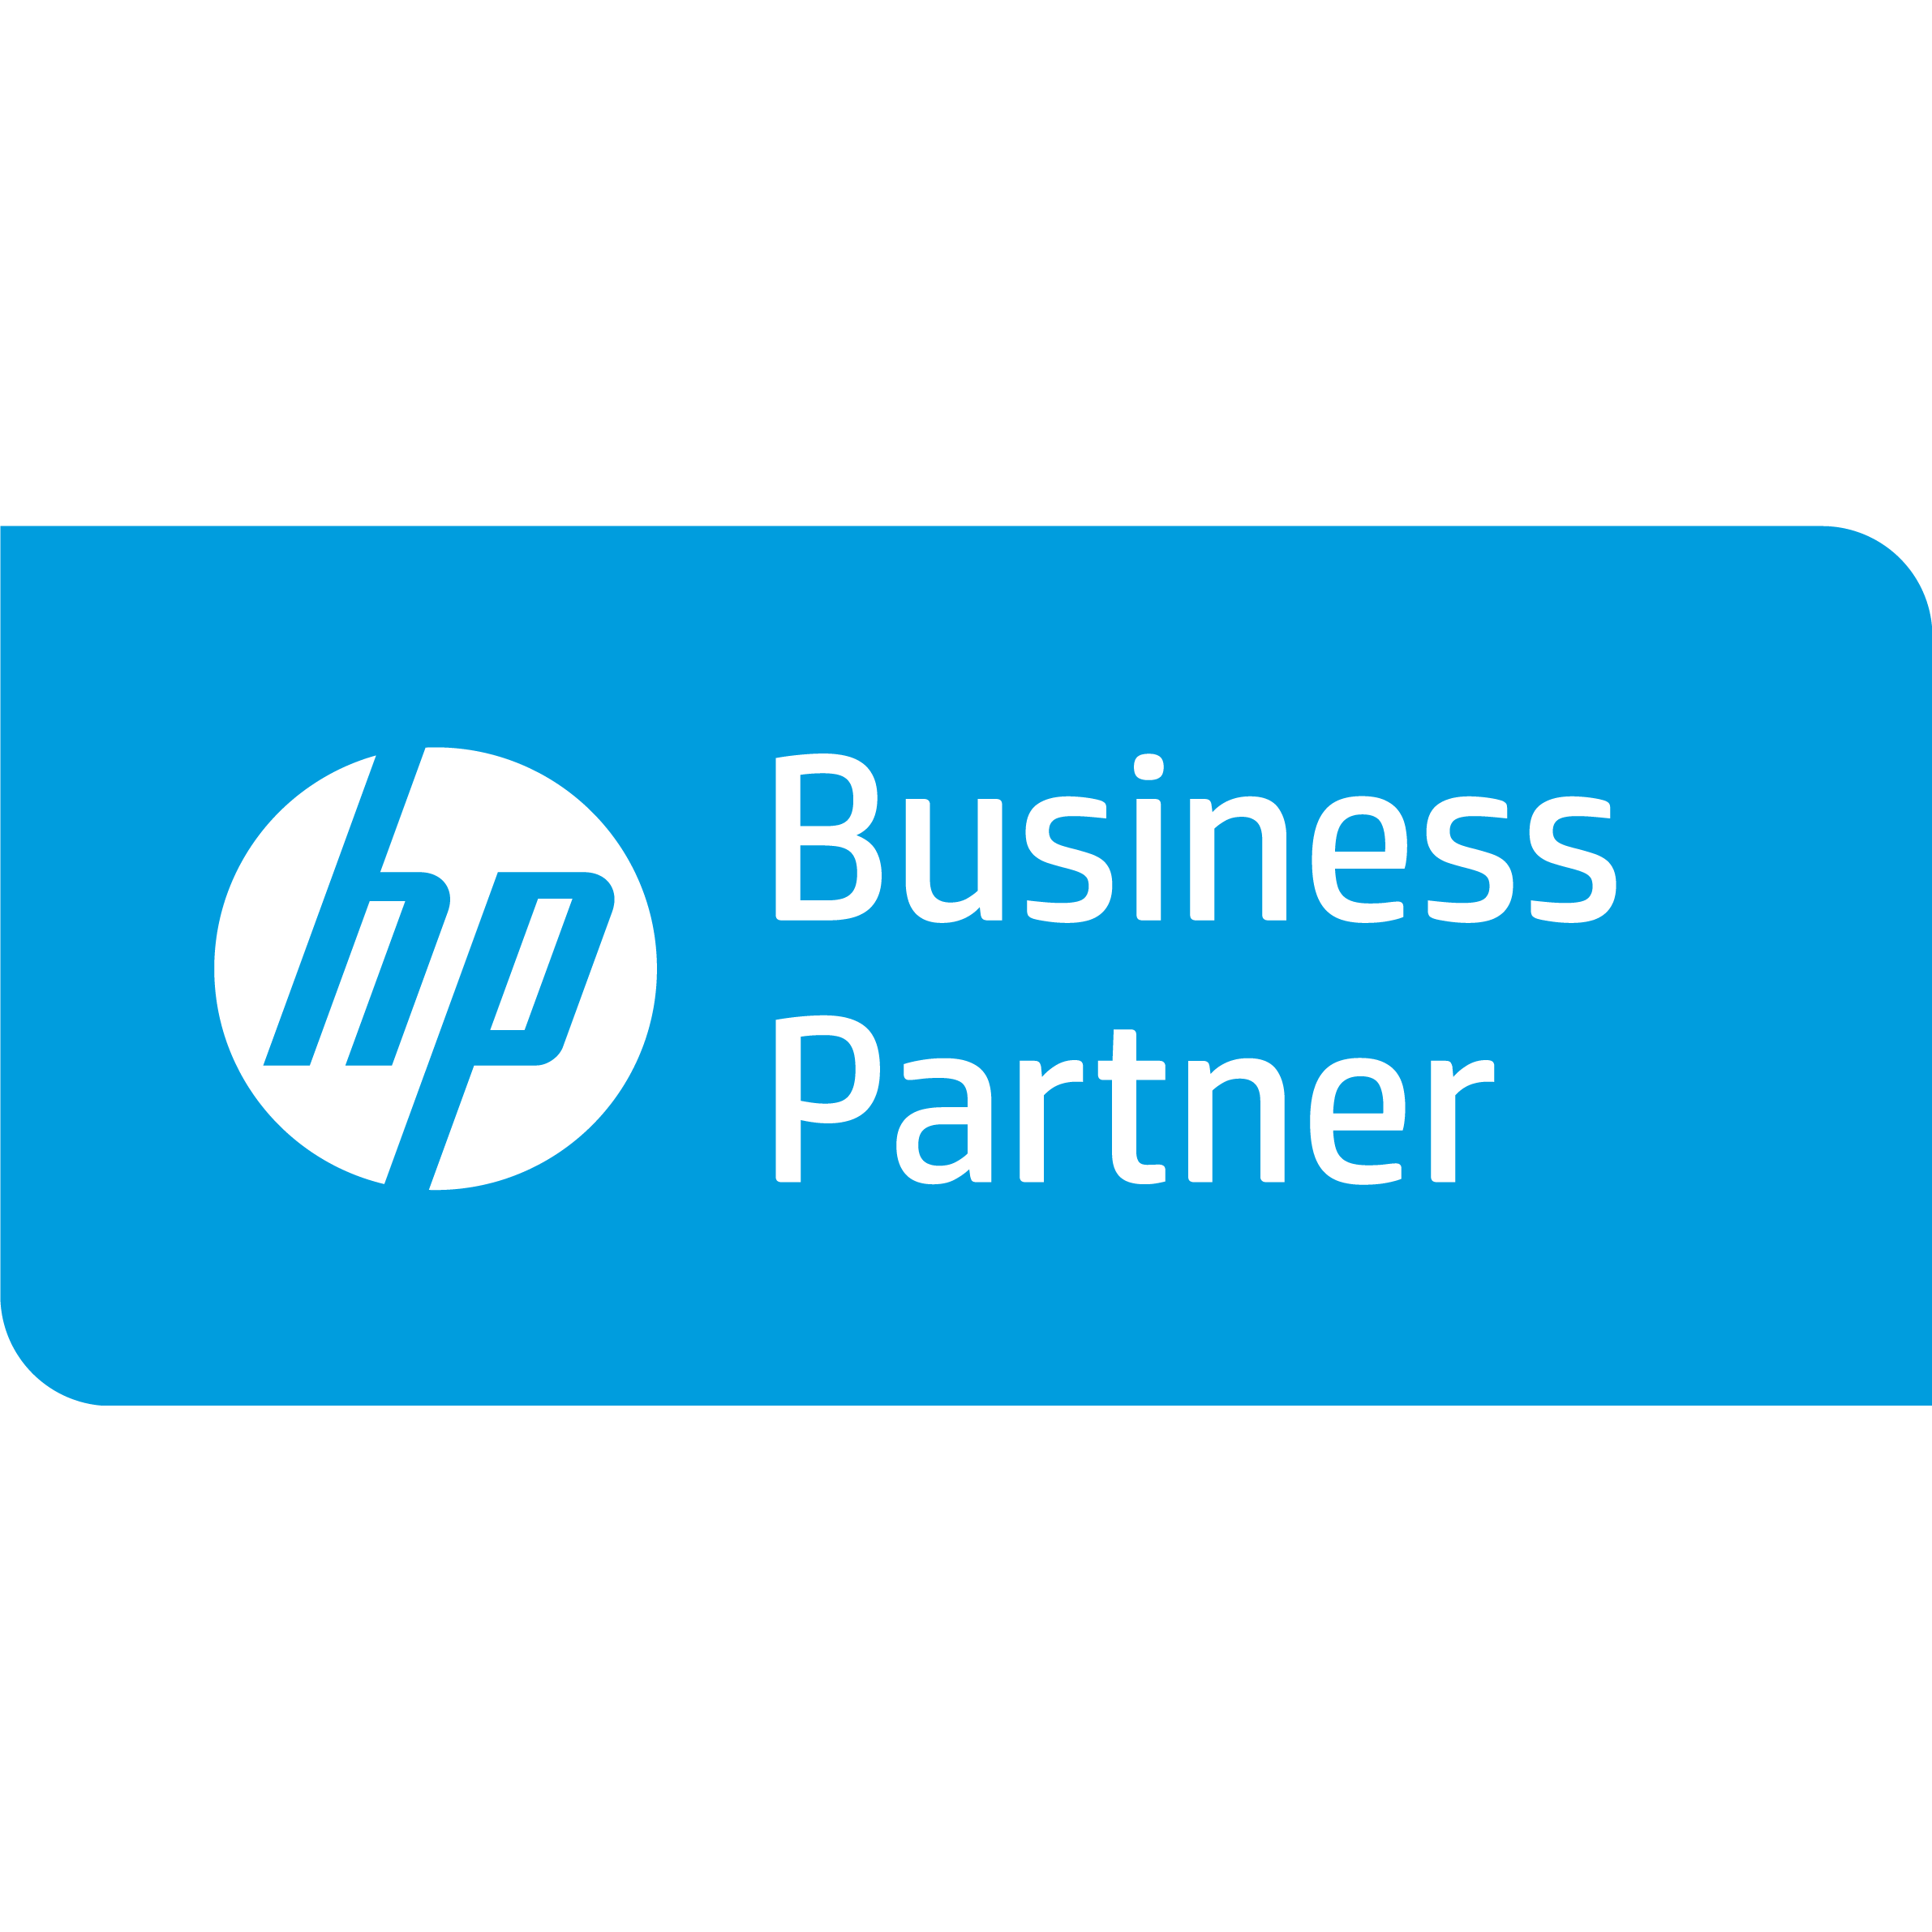 Business_Partner_Insignia-1.png